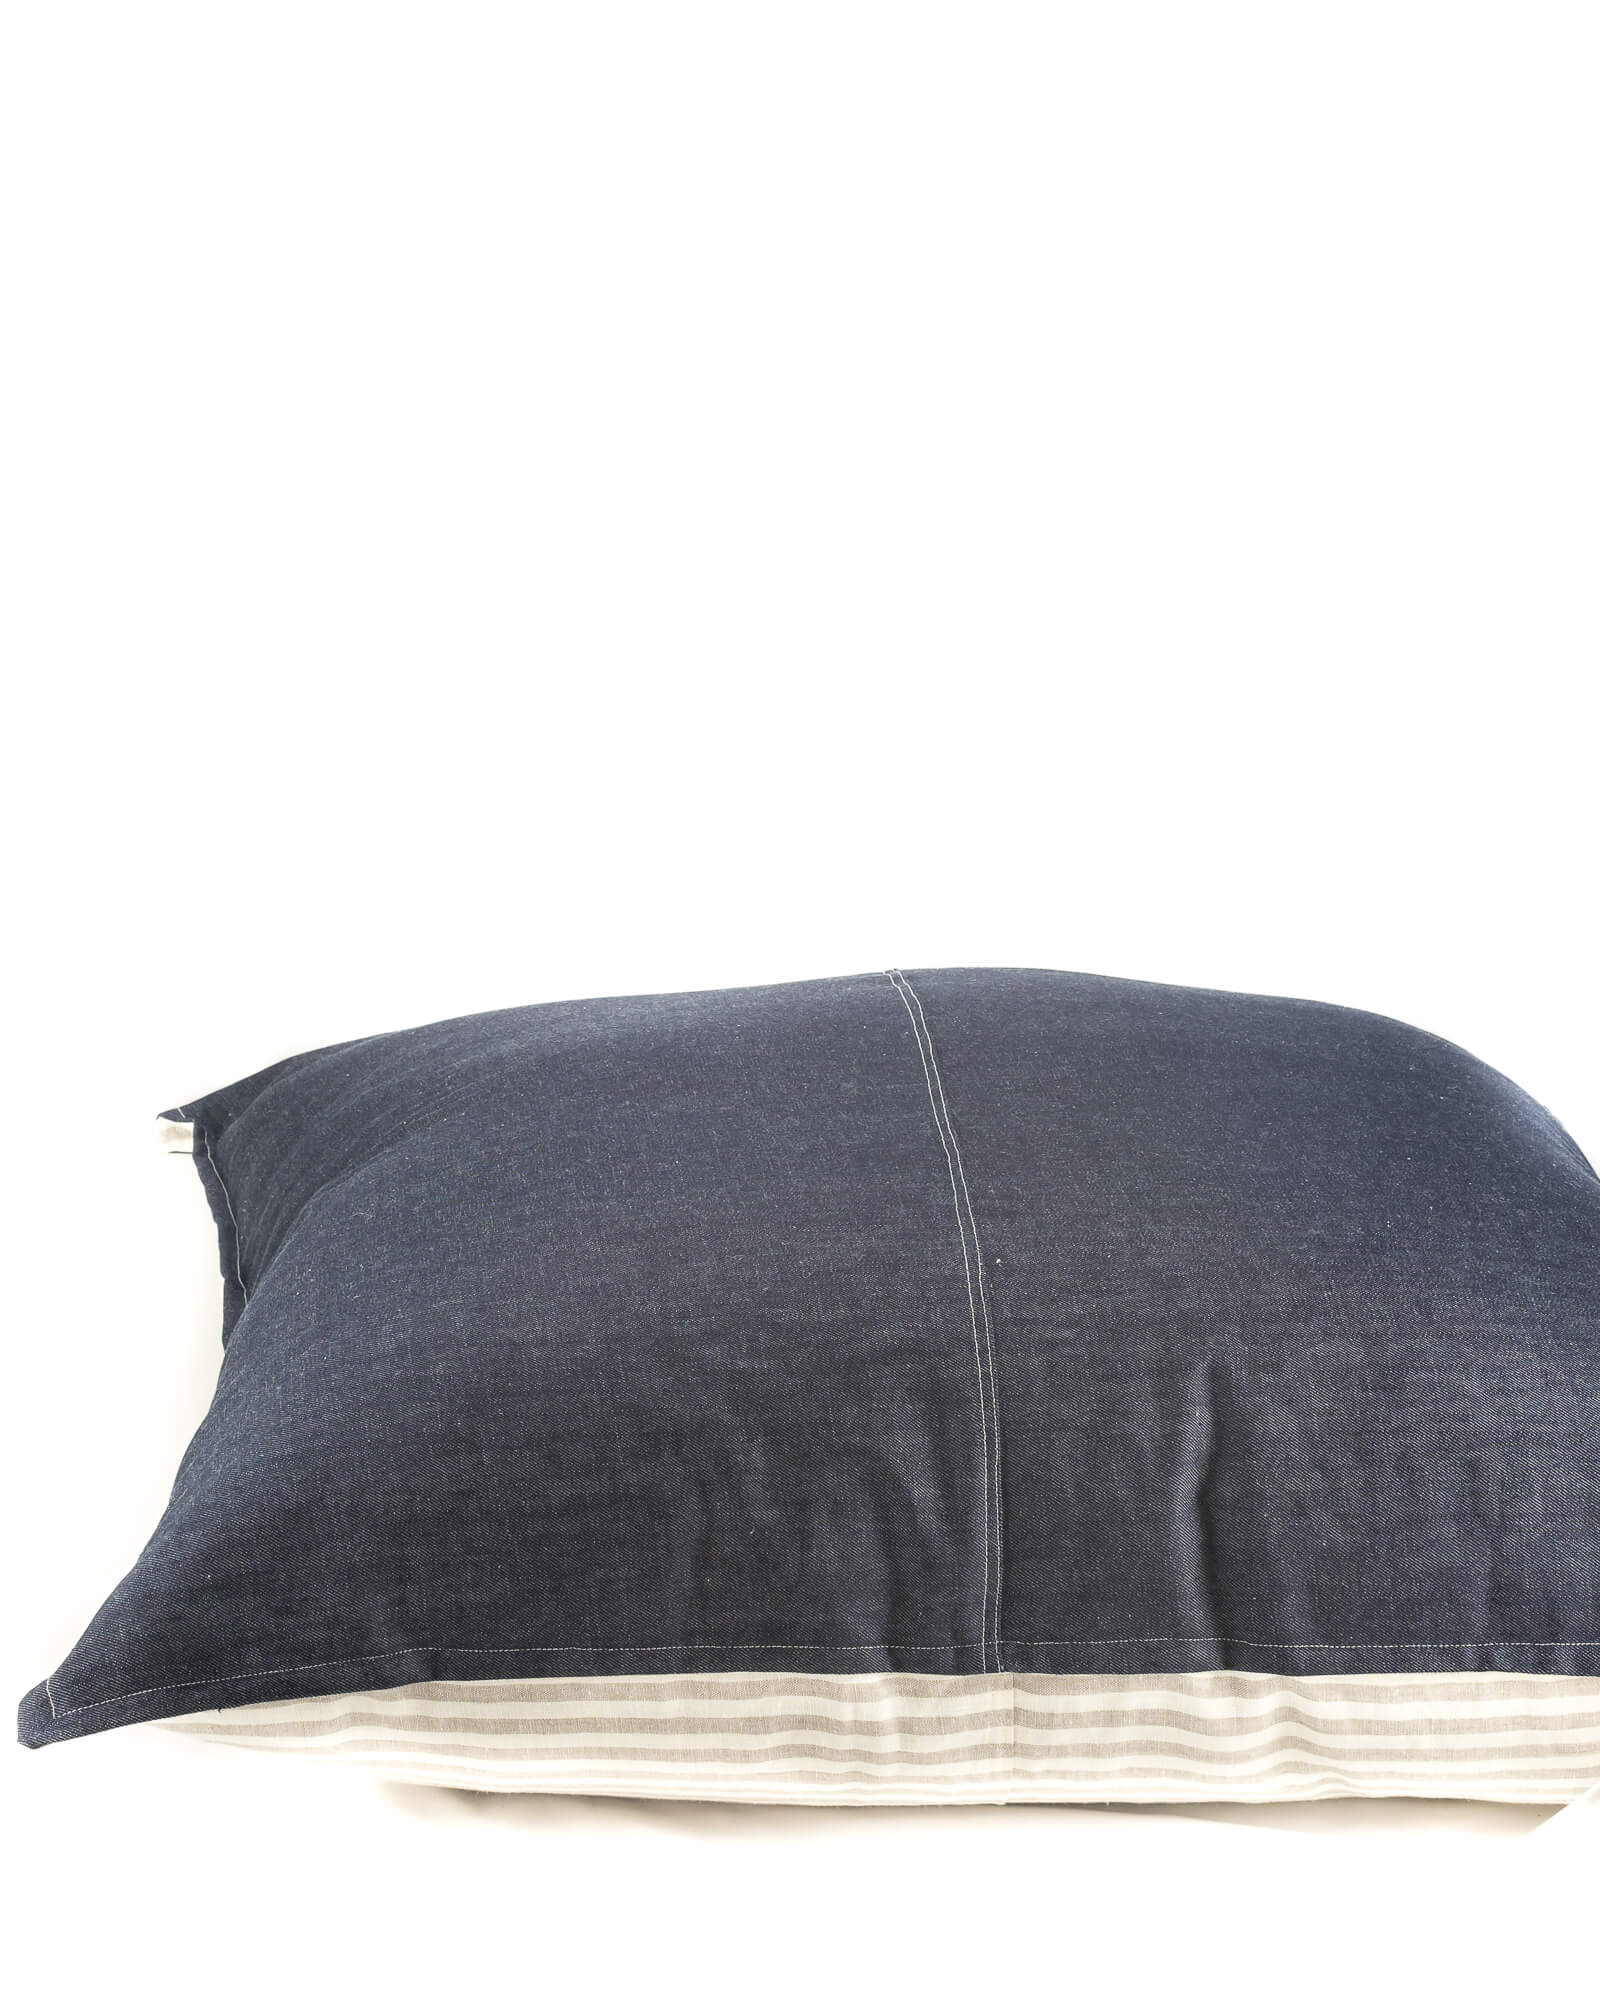 Organic Cotton floor cushion